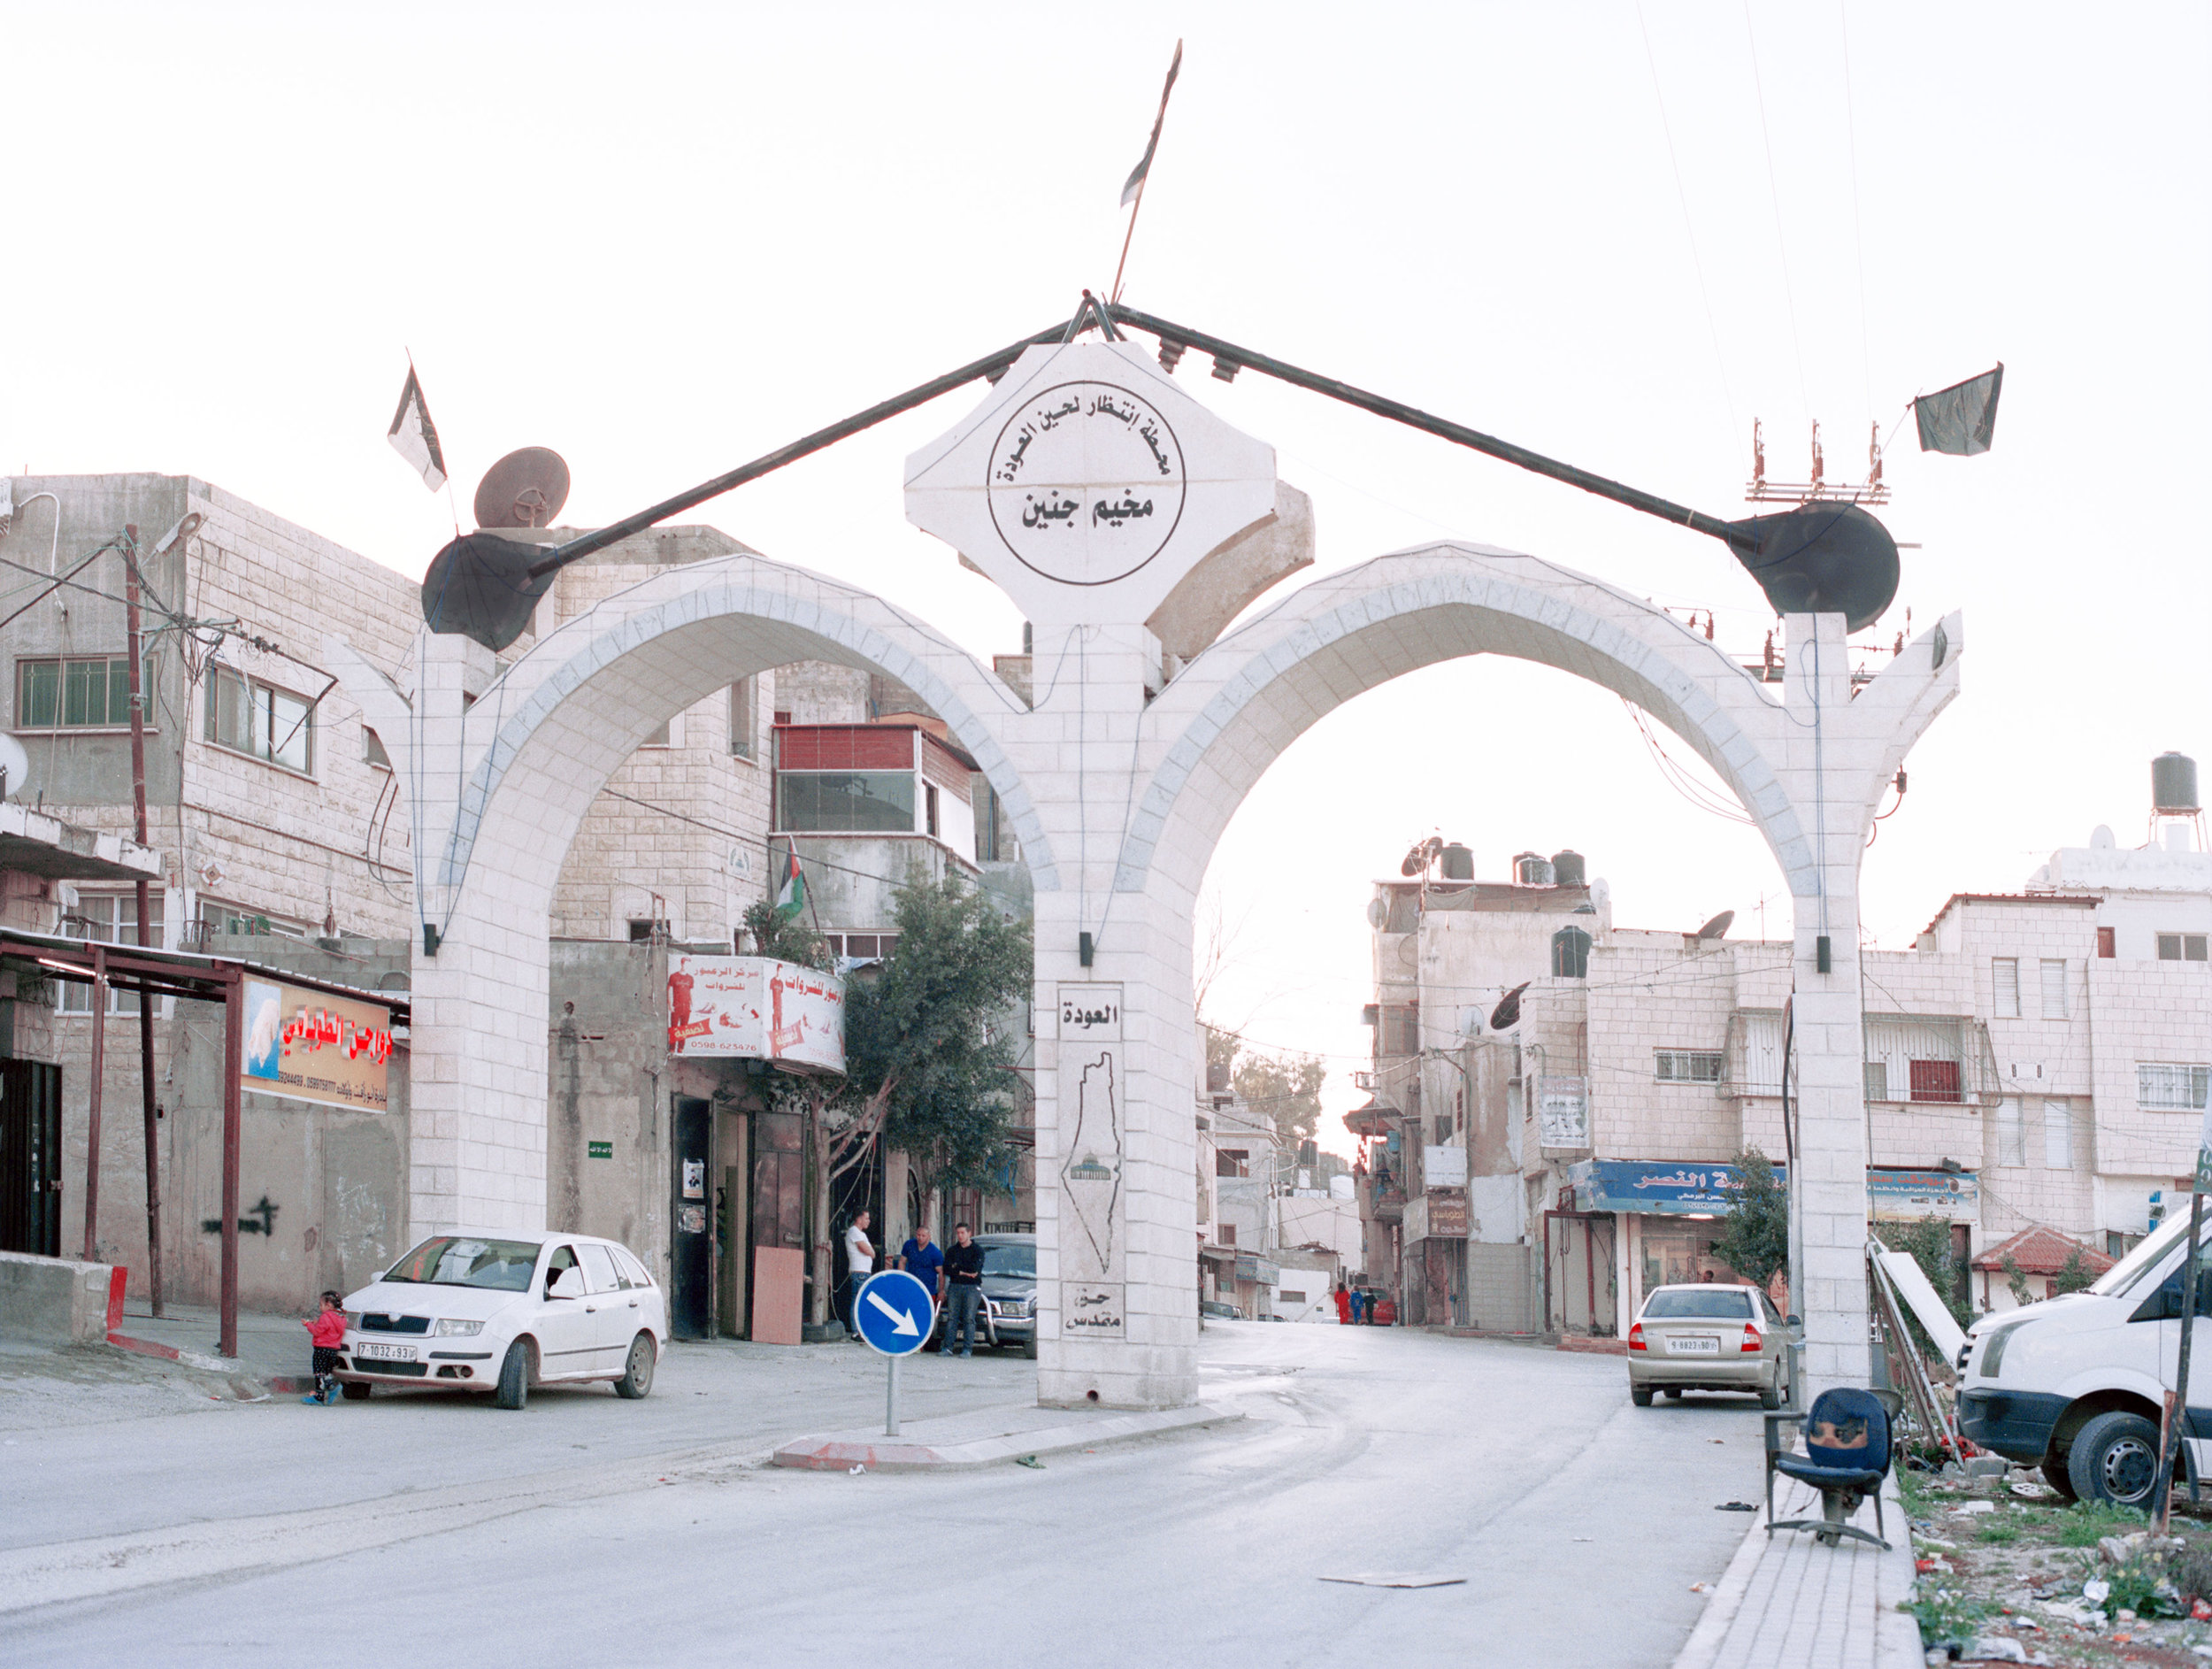 Entrance of Jenin refugee camp